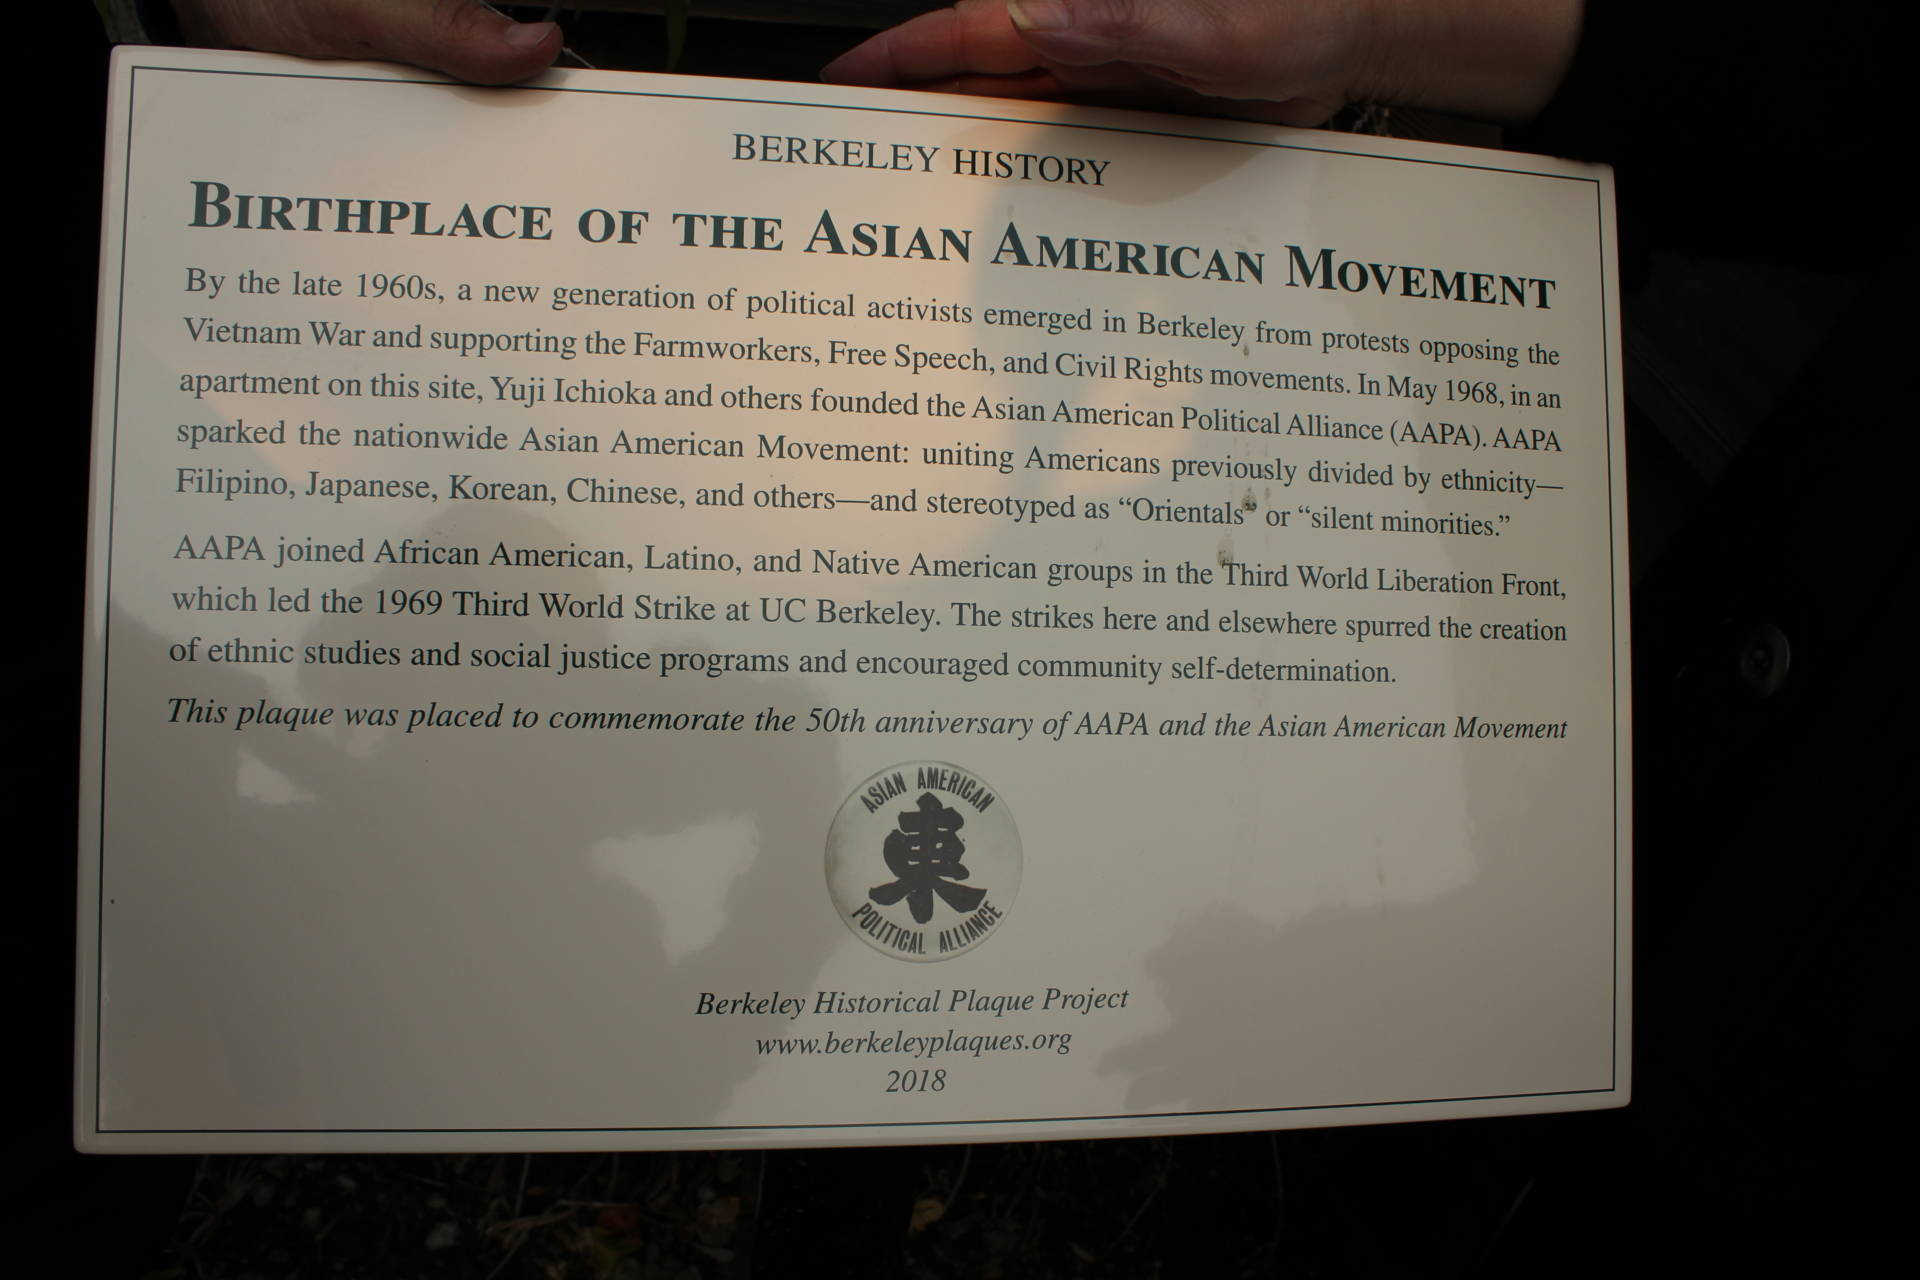 A Berkeley plaque commemorating the 50th anniversary of the founding of the Asian American Political Alliance, which coined the term Asian American and sparked a movement.